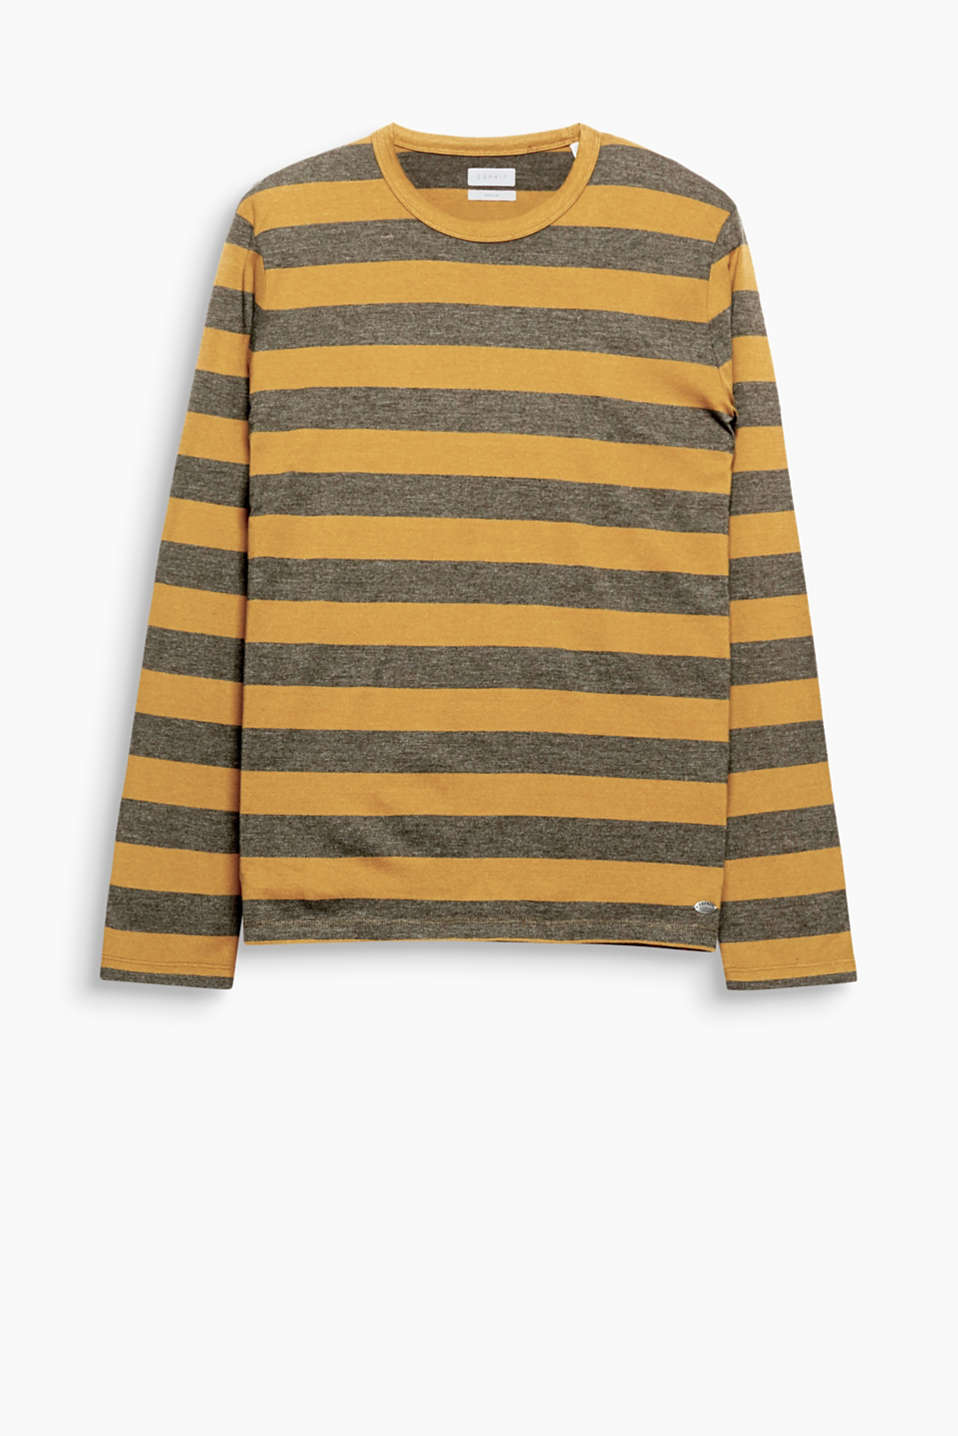 Cool stripes, mixed textures: print and melange. This long sleeve top is crafted from jersey fabric.